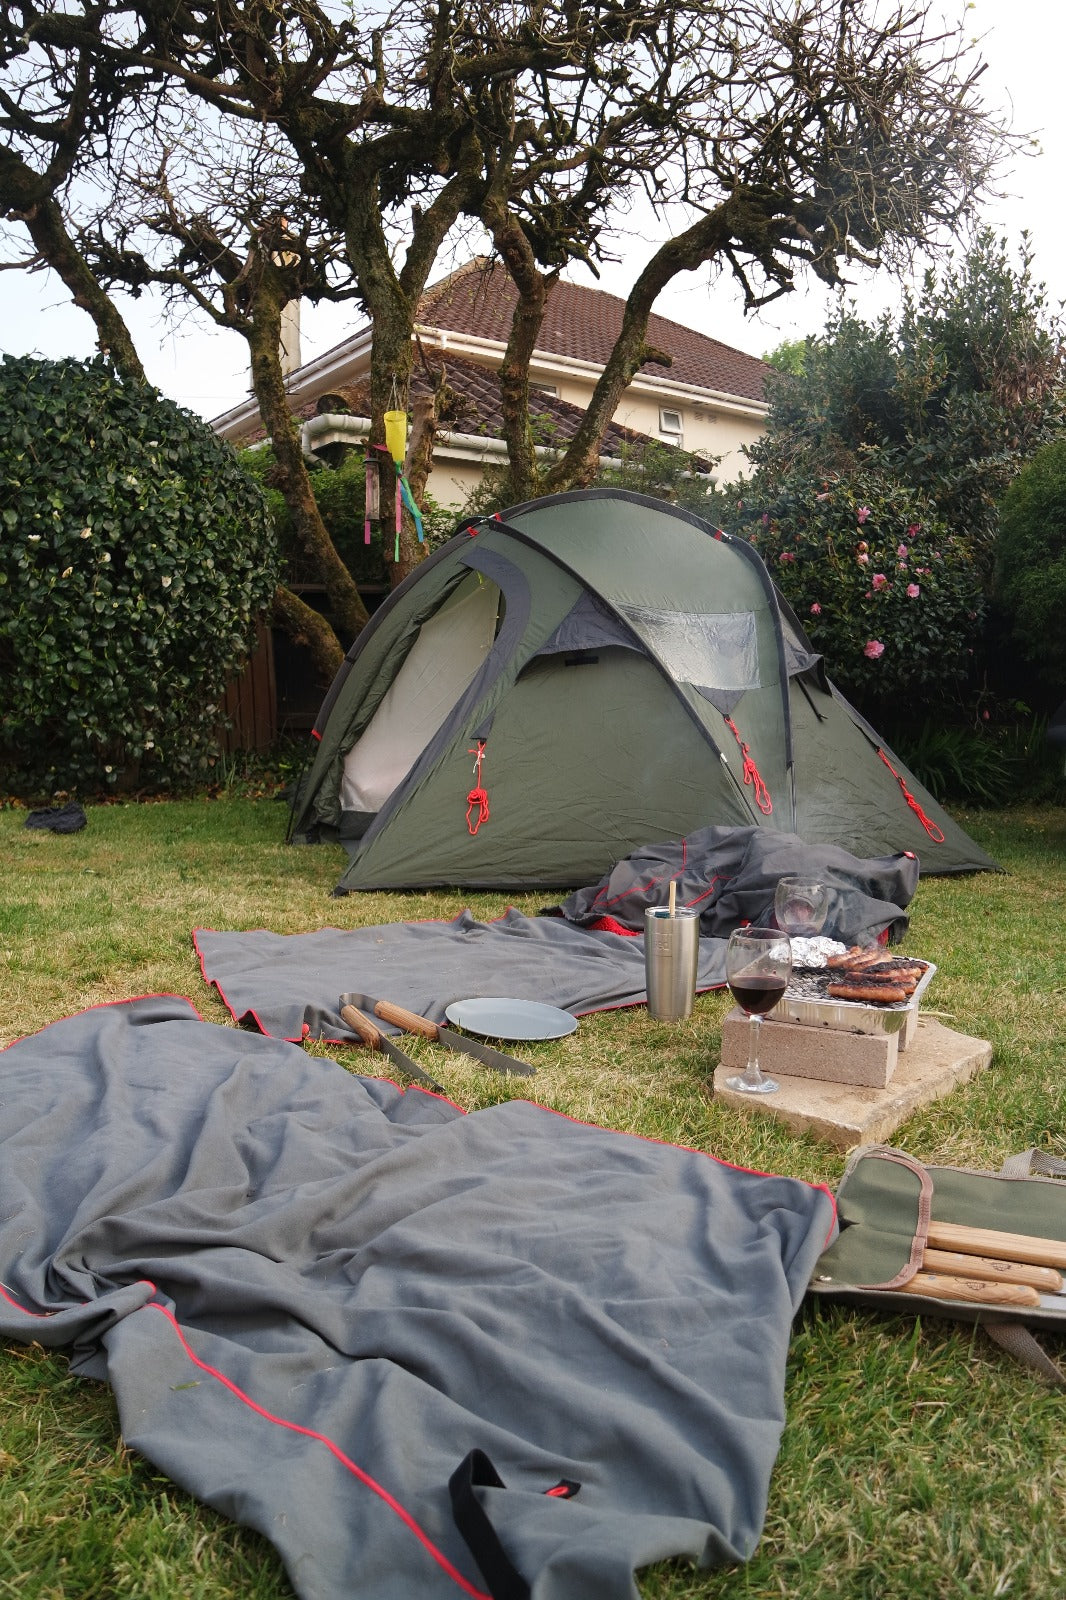 Camp site in the back garden